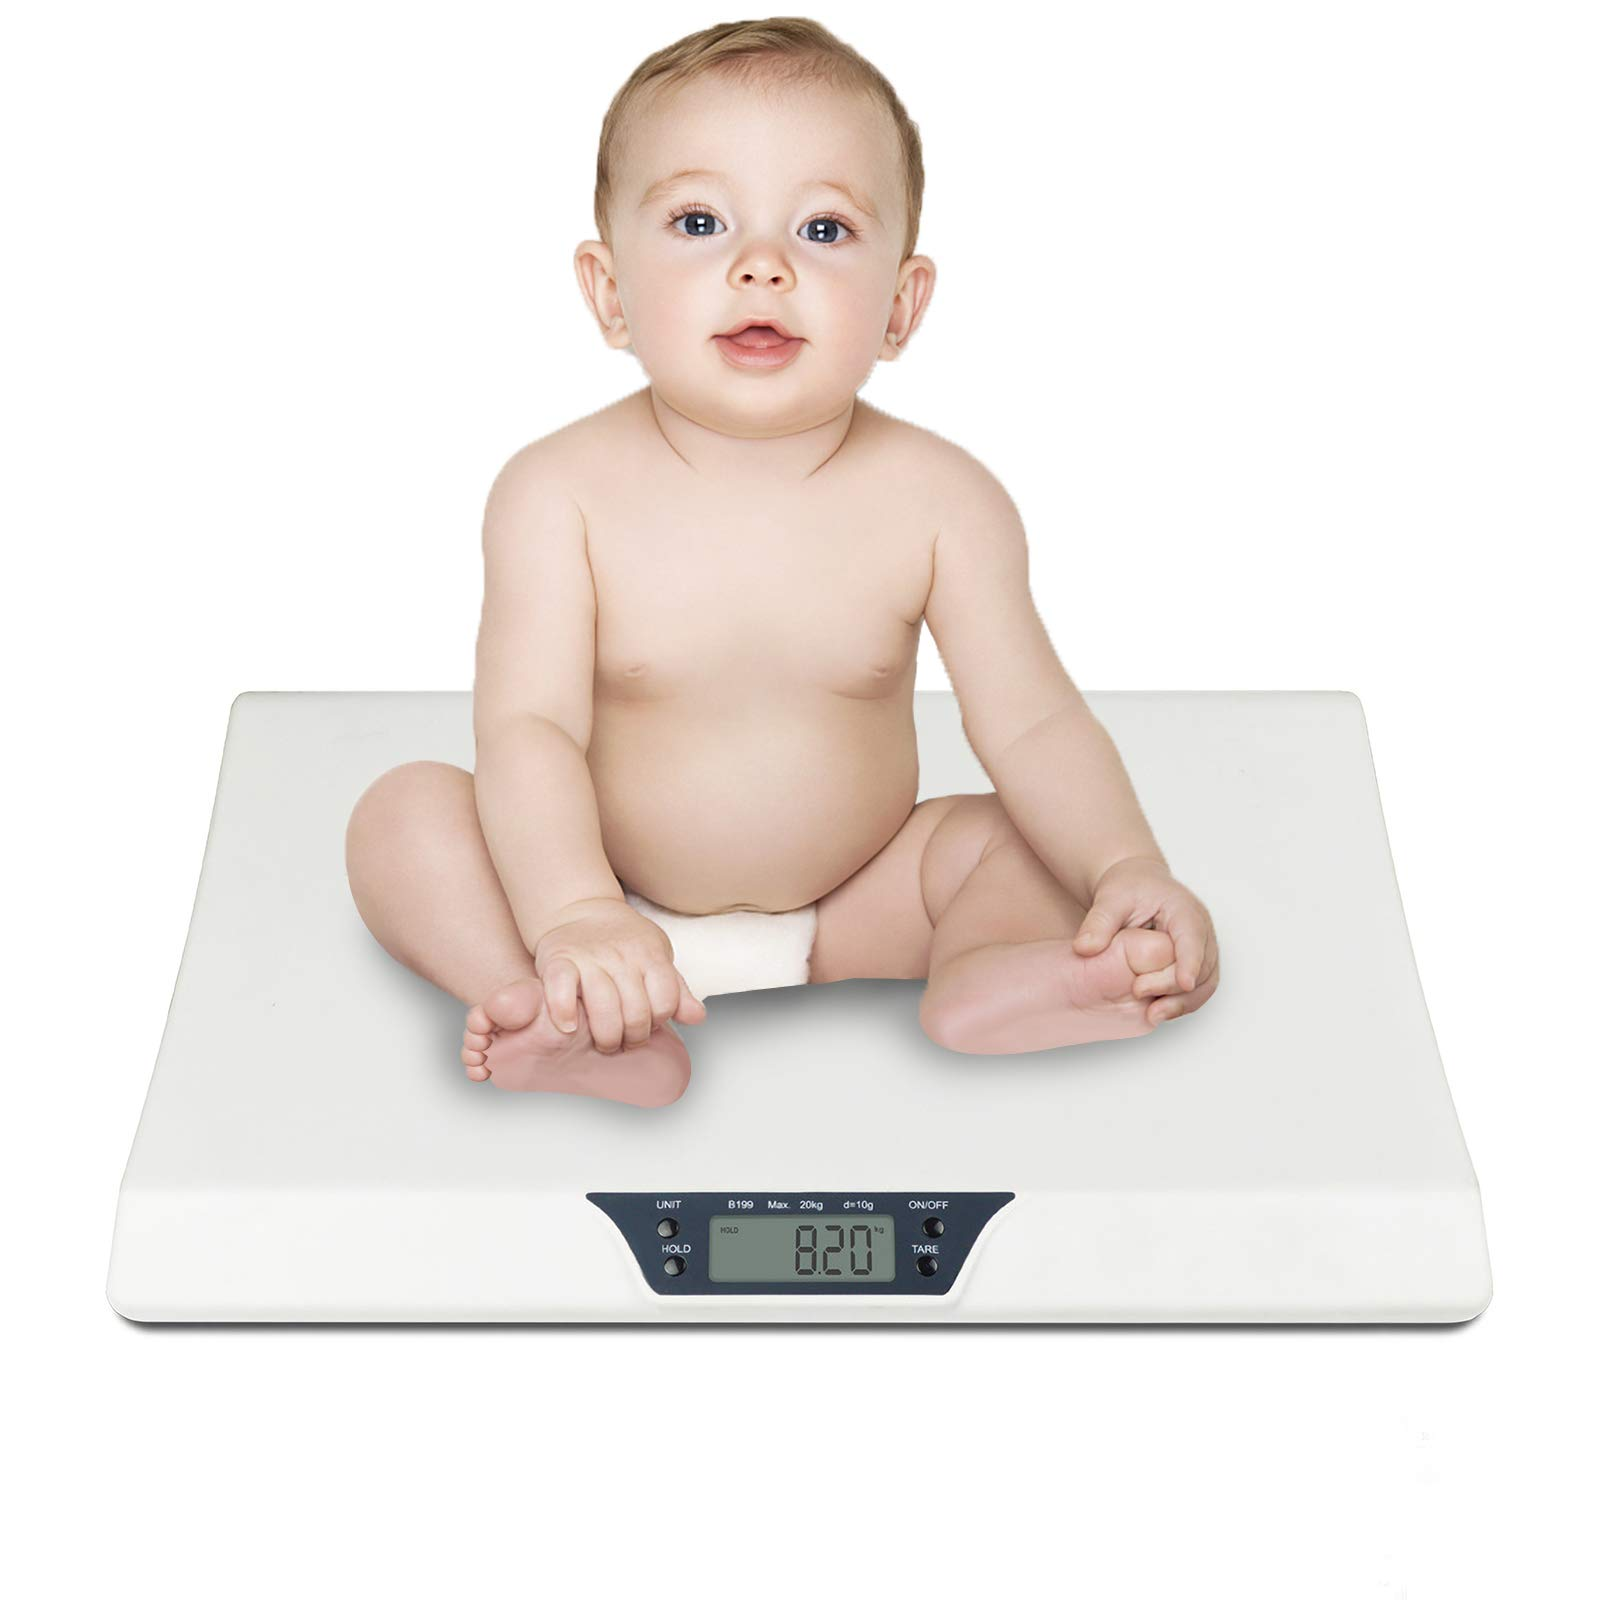 Baby Scale, YiiMO Electronic Digital Pet Scale in lbs and Ounces LCD Display for Infant,Toddler,Newborn,Puppy,Cat Dog Animals Weight with Hold Function Max 44LB (White)